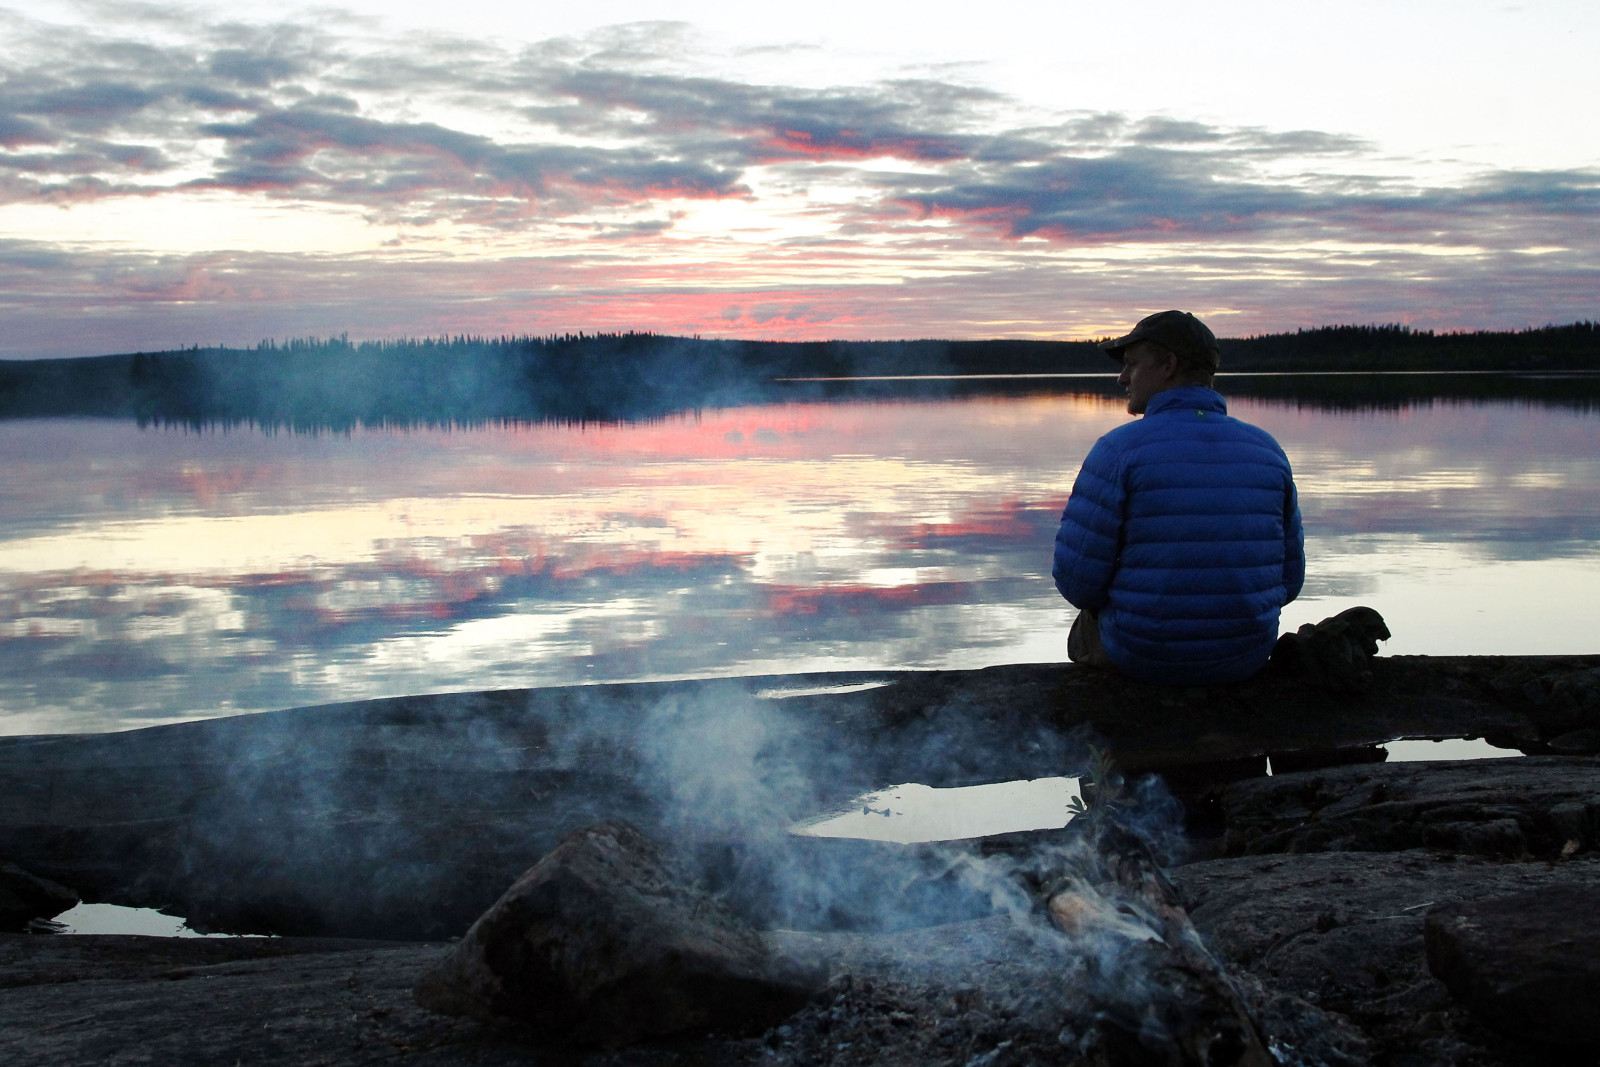 Watching an unusually colorful sunset in northern Saskatchewan after a full day of canoeing. (Cristina Woodworth)